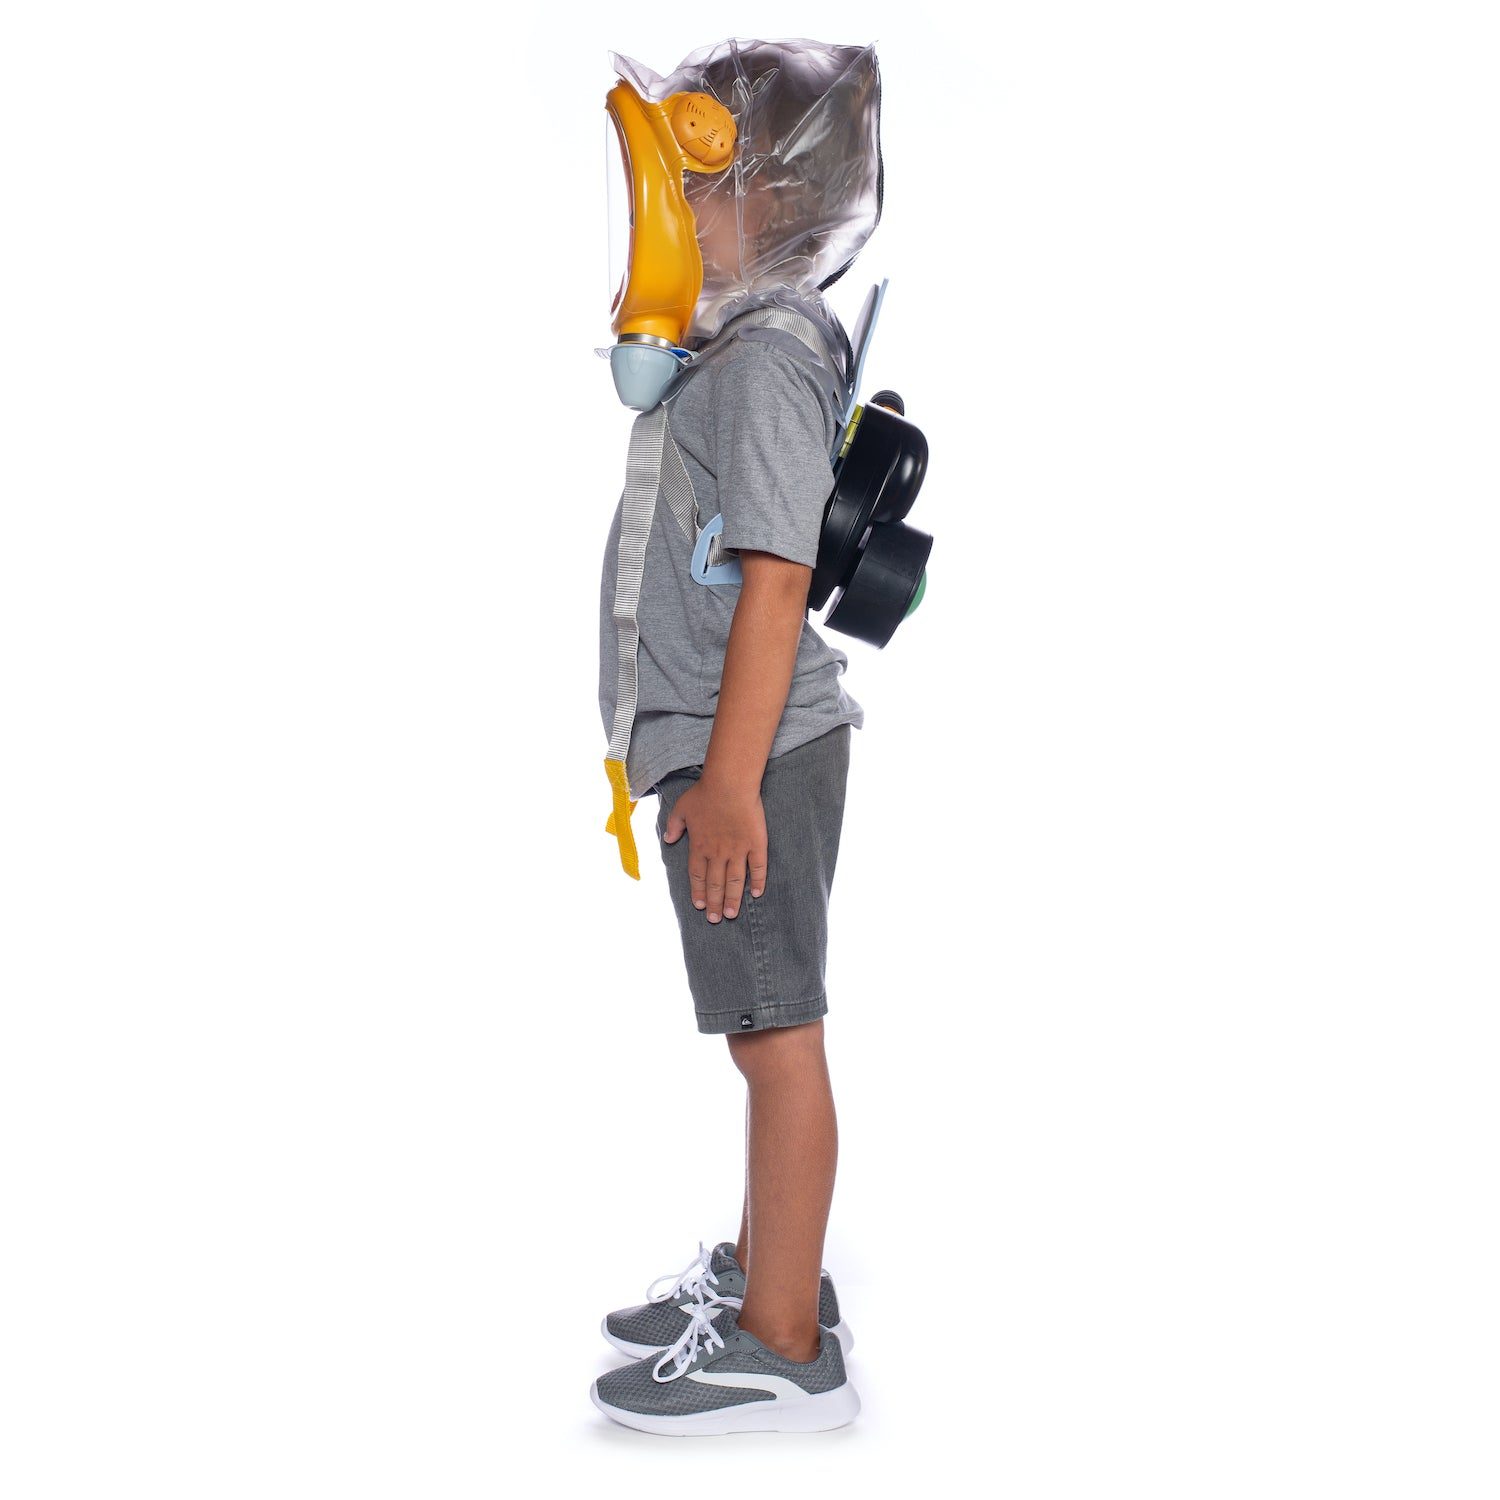 Child standing sideways while wearing the CM-3M Baby Gas Mask